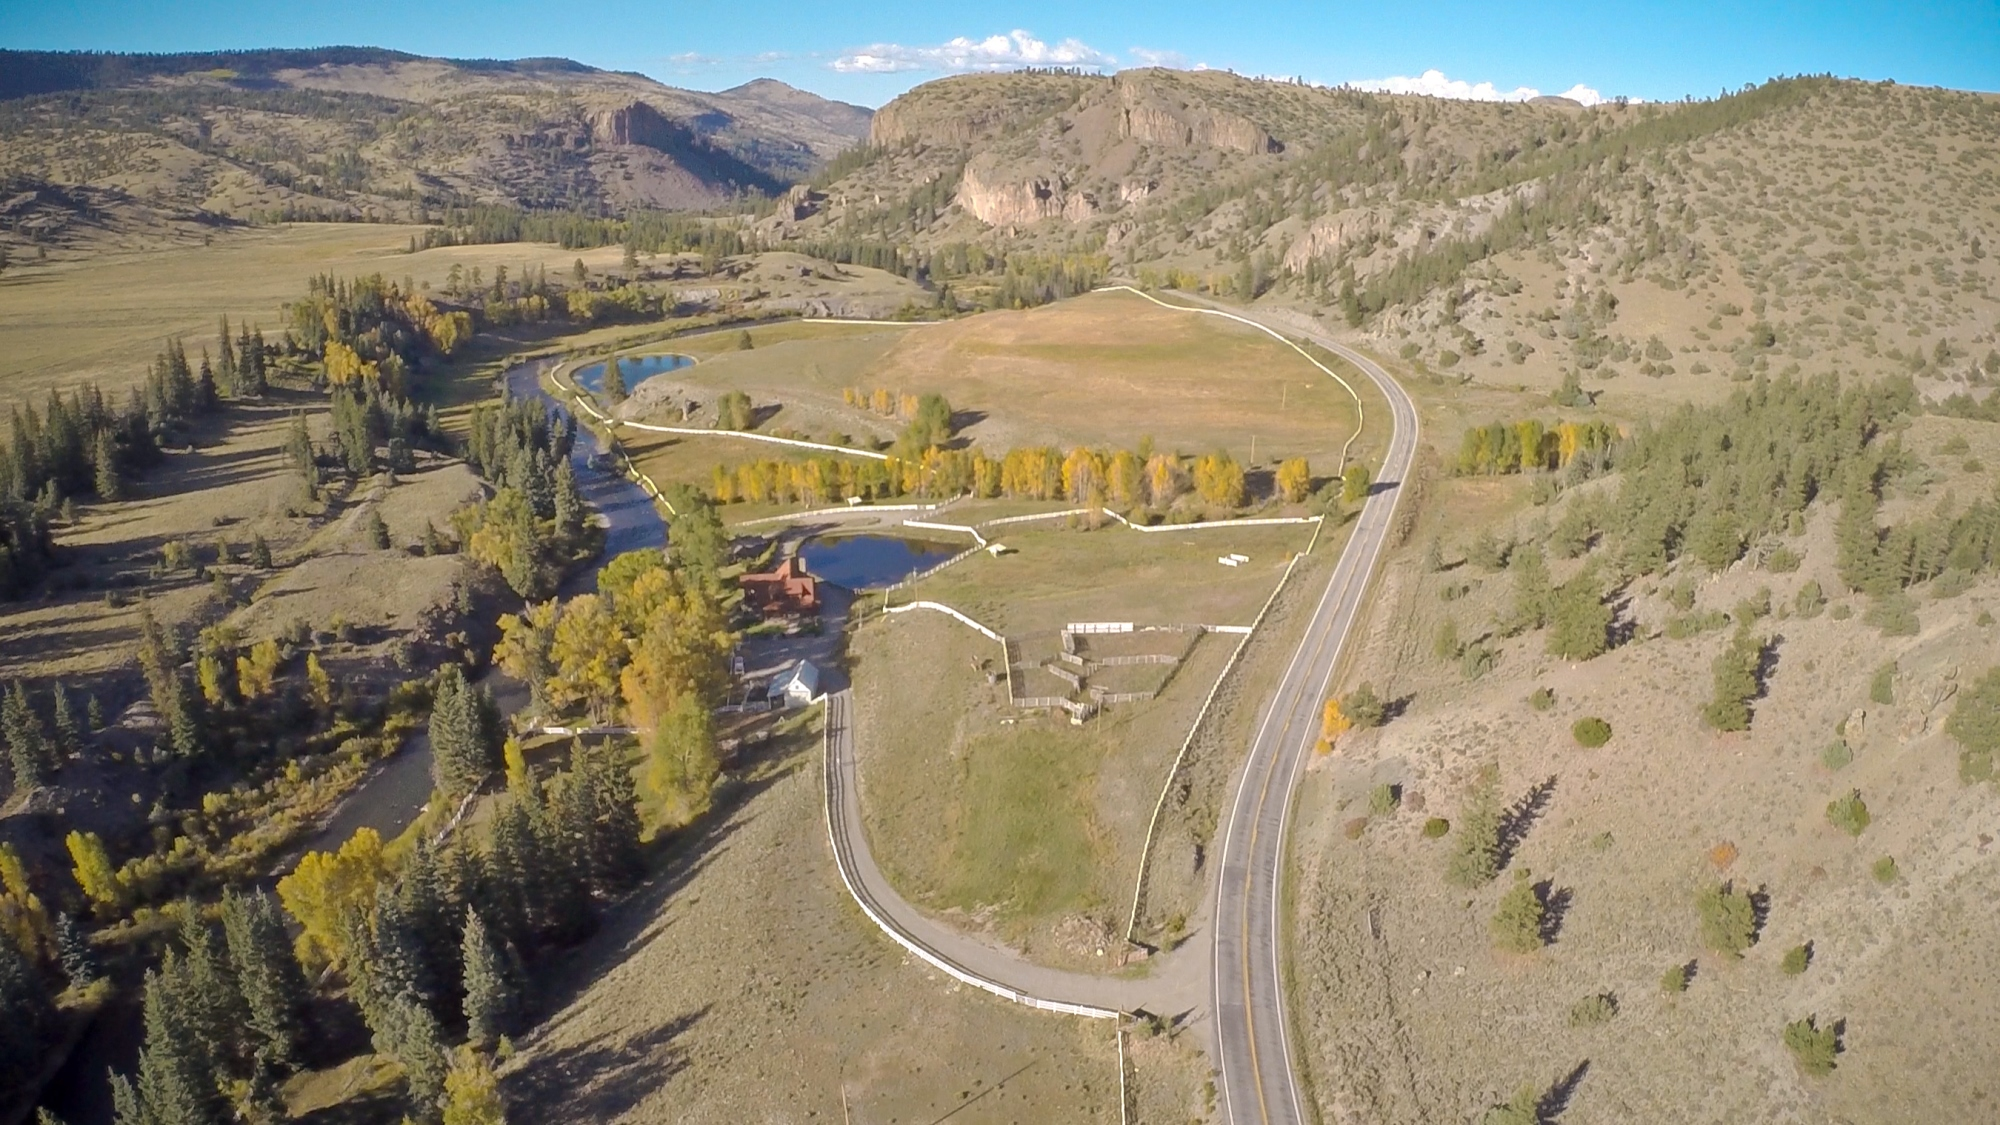 Single Family Home for Sale at River Front Ranch 5963 State Highway 149 Powderhorn, Colorado 81243 United States